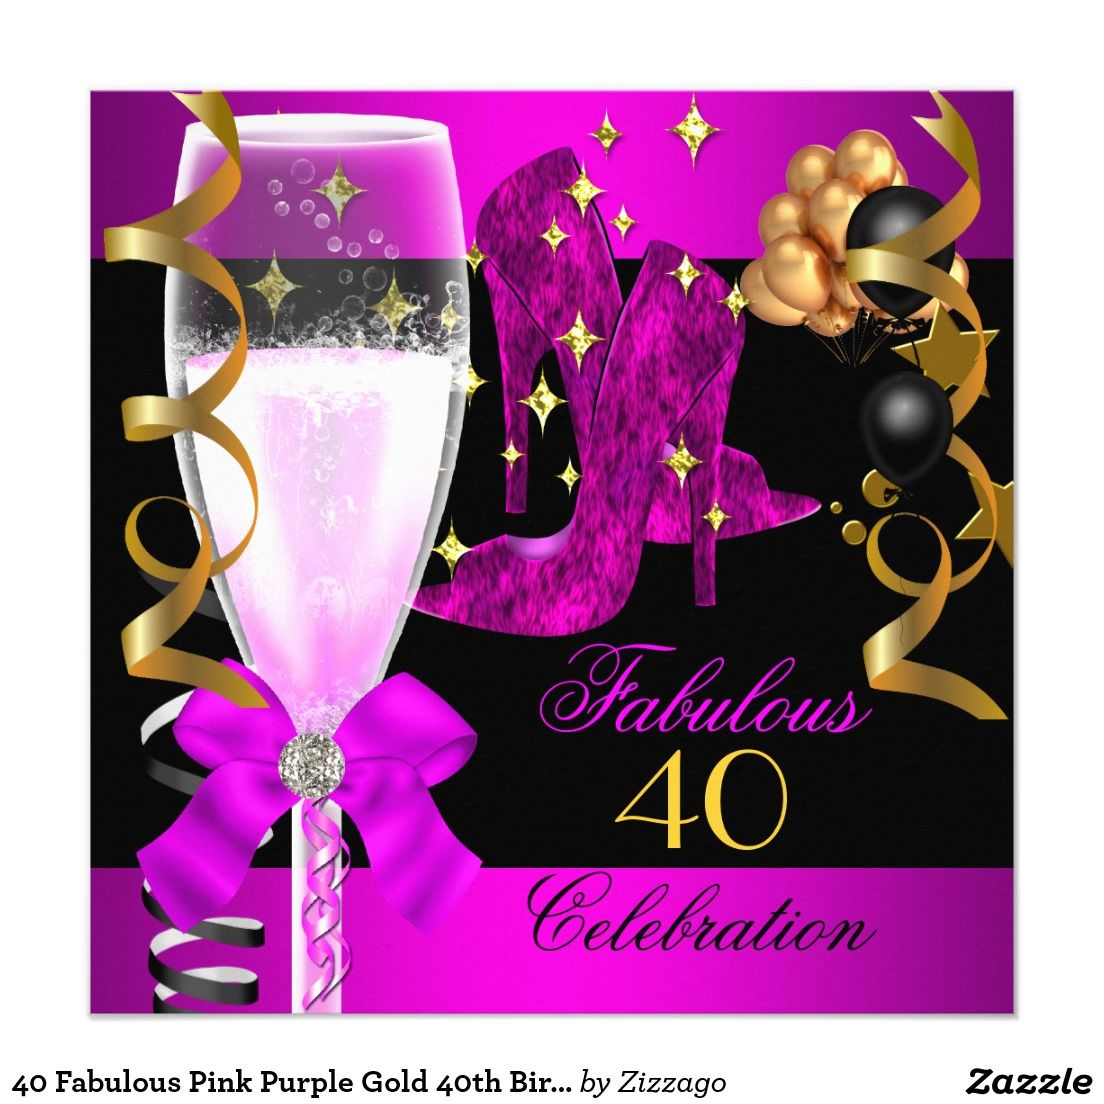 40 fabulous pink purple gold 40th birthday party card purple gold 40 fabulous pink purple gold 40th birthday party 525x525 square paper invitation card filmwisefo Choice Image